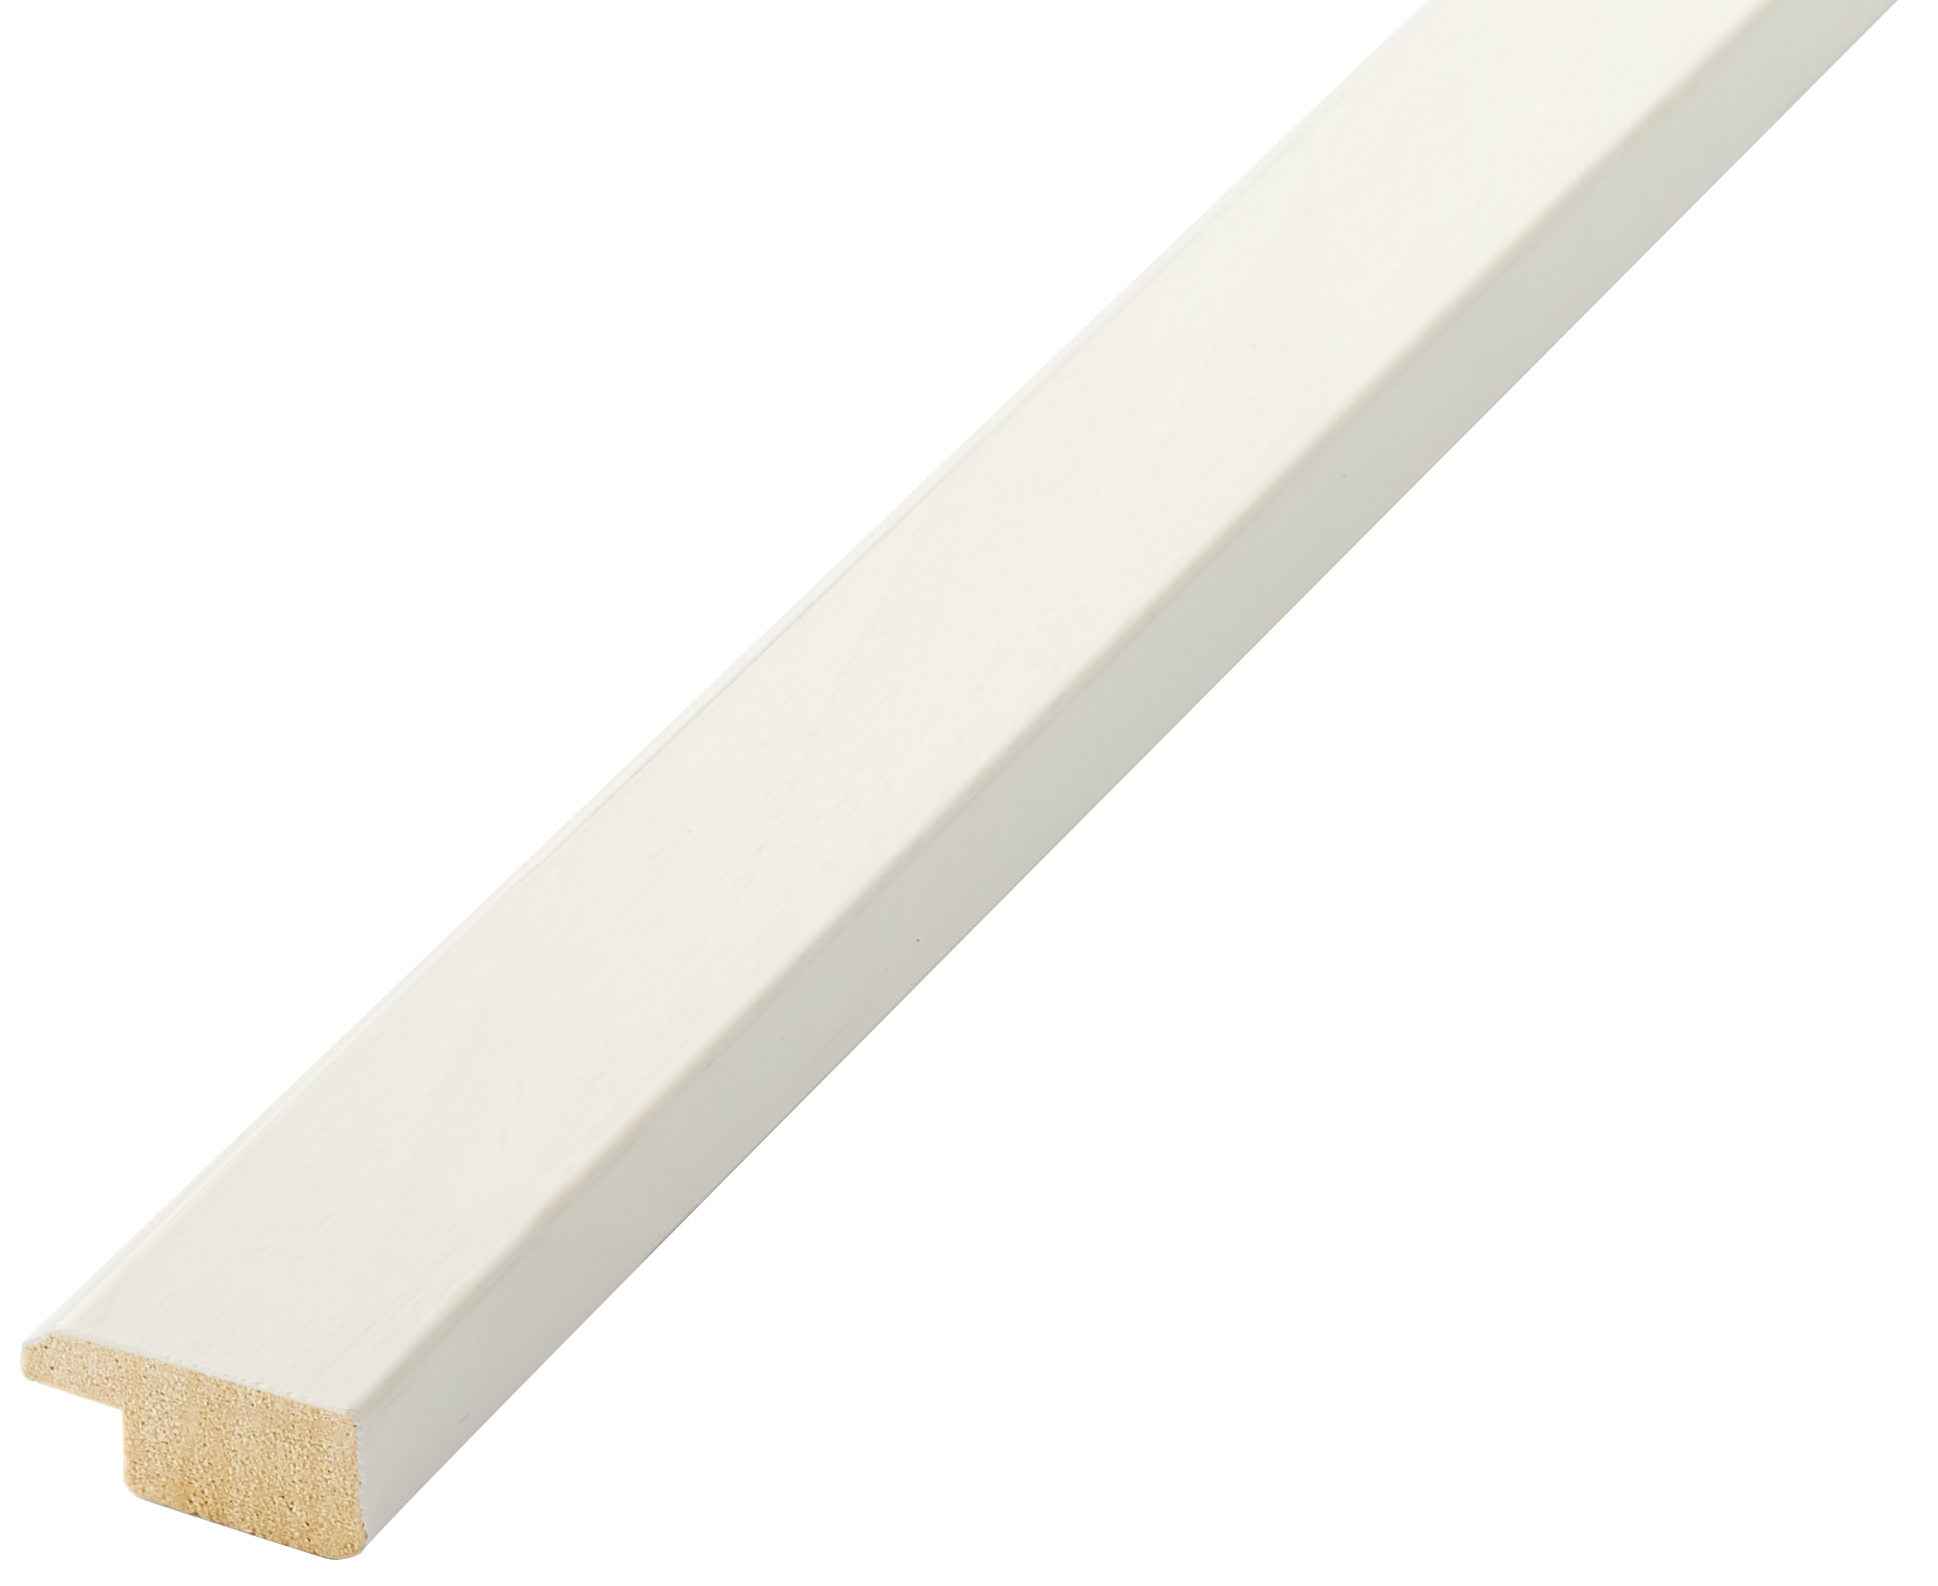 Liner ayous - Width 21mm Height 10 - silver sight edge